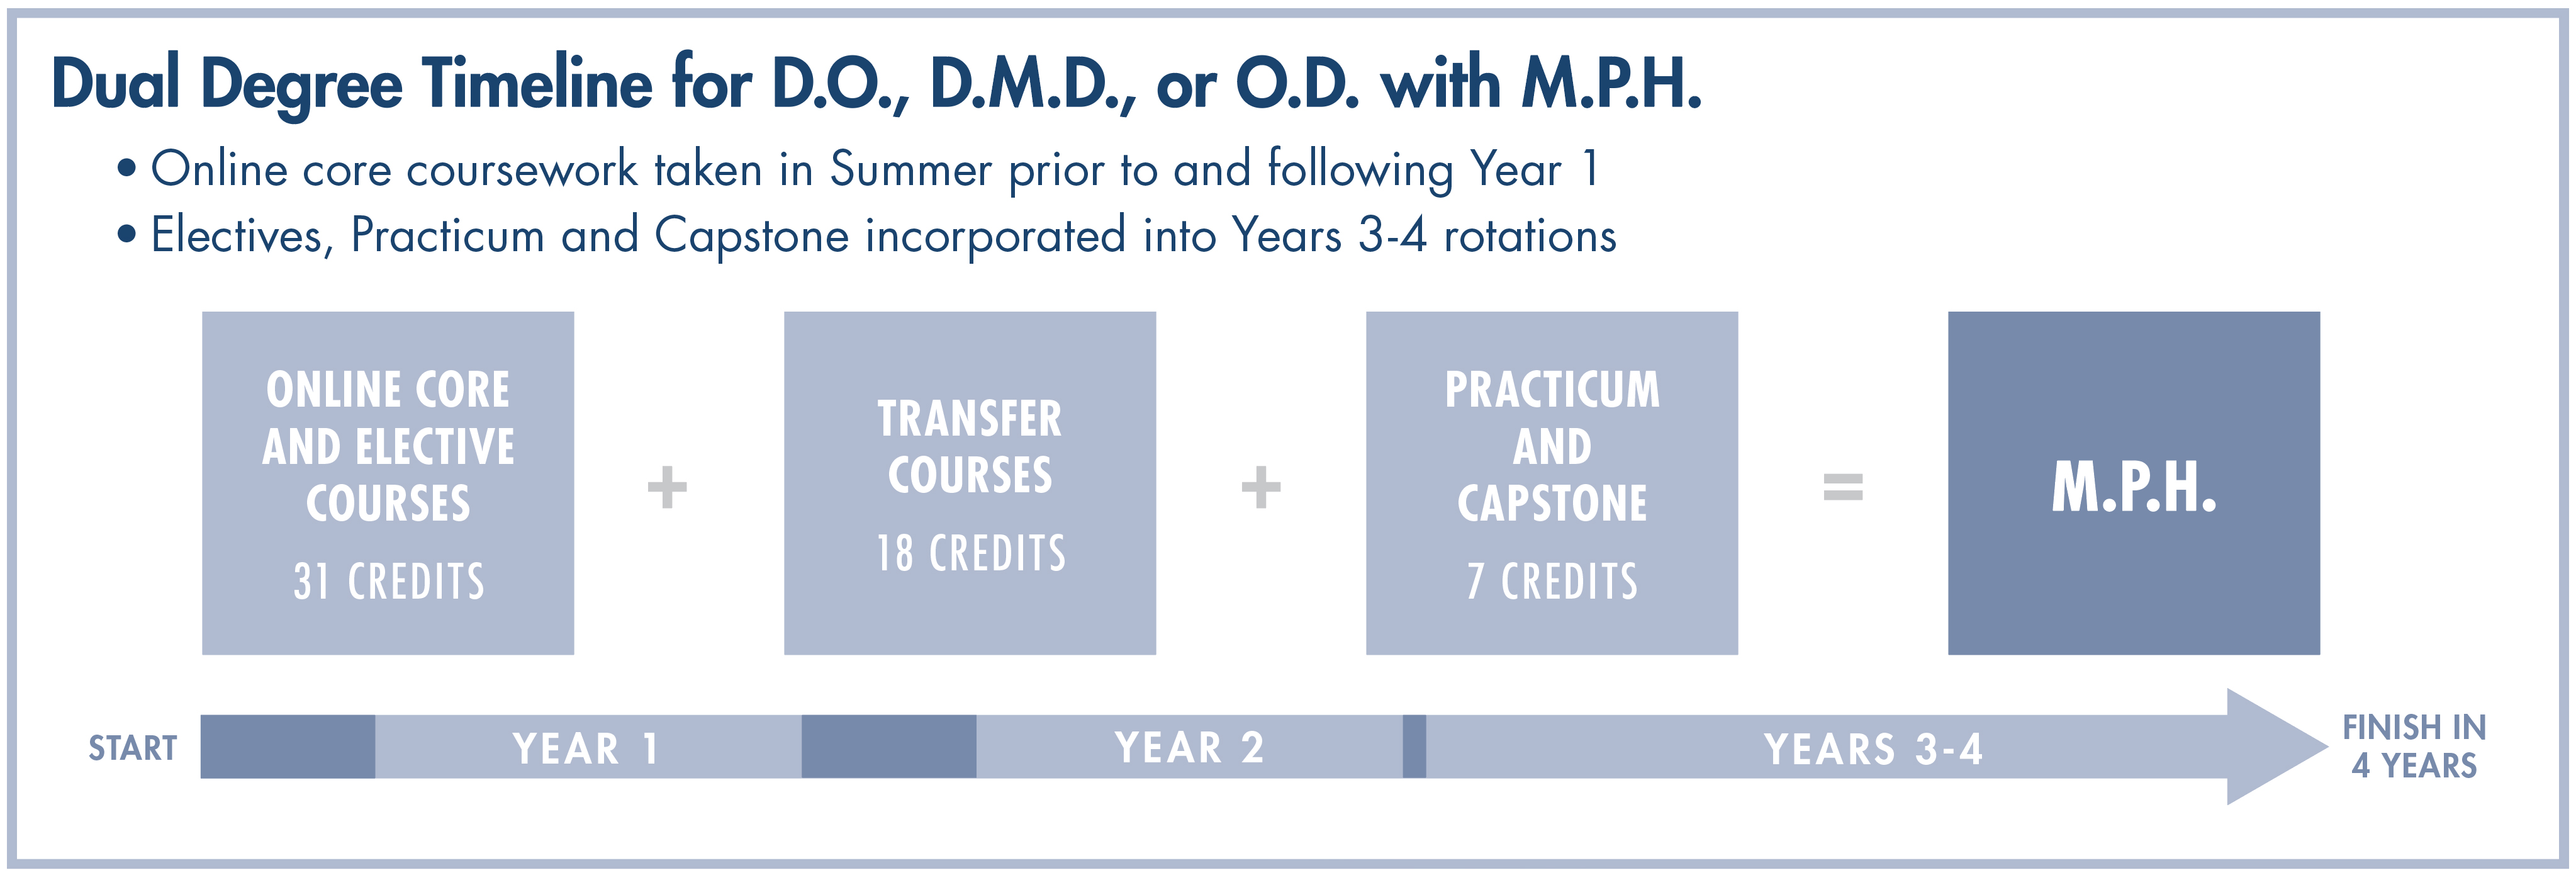 Dual Degree Timeline with DO, DMD, OD